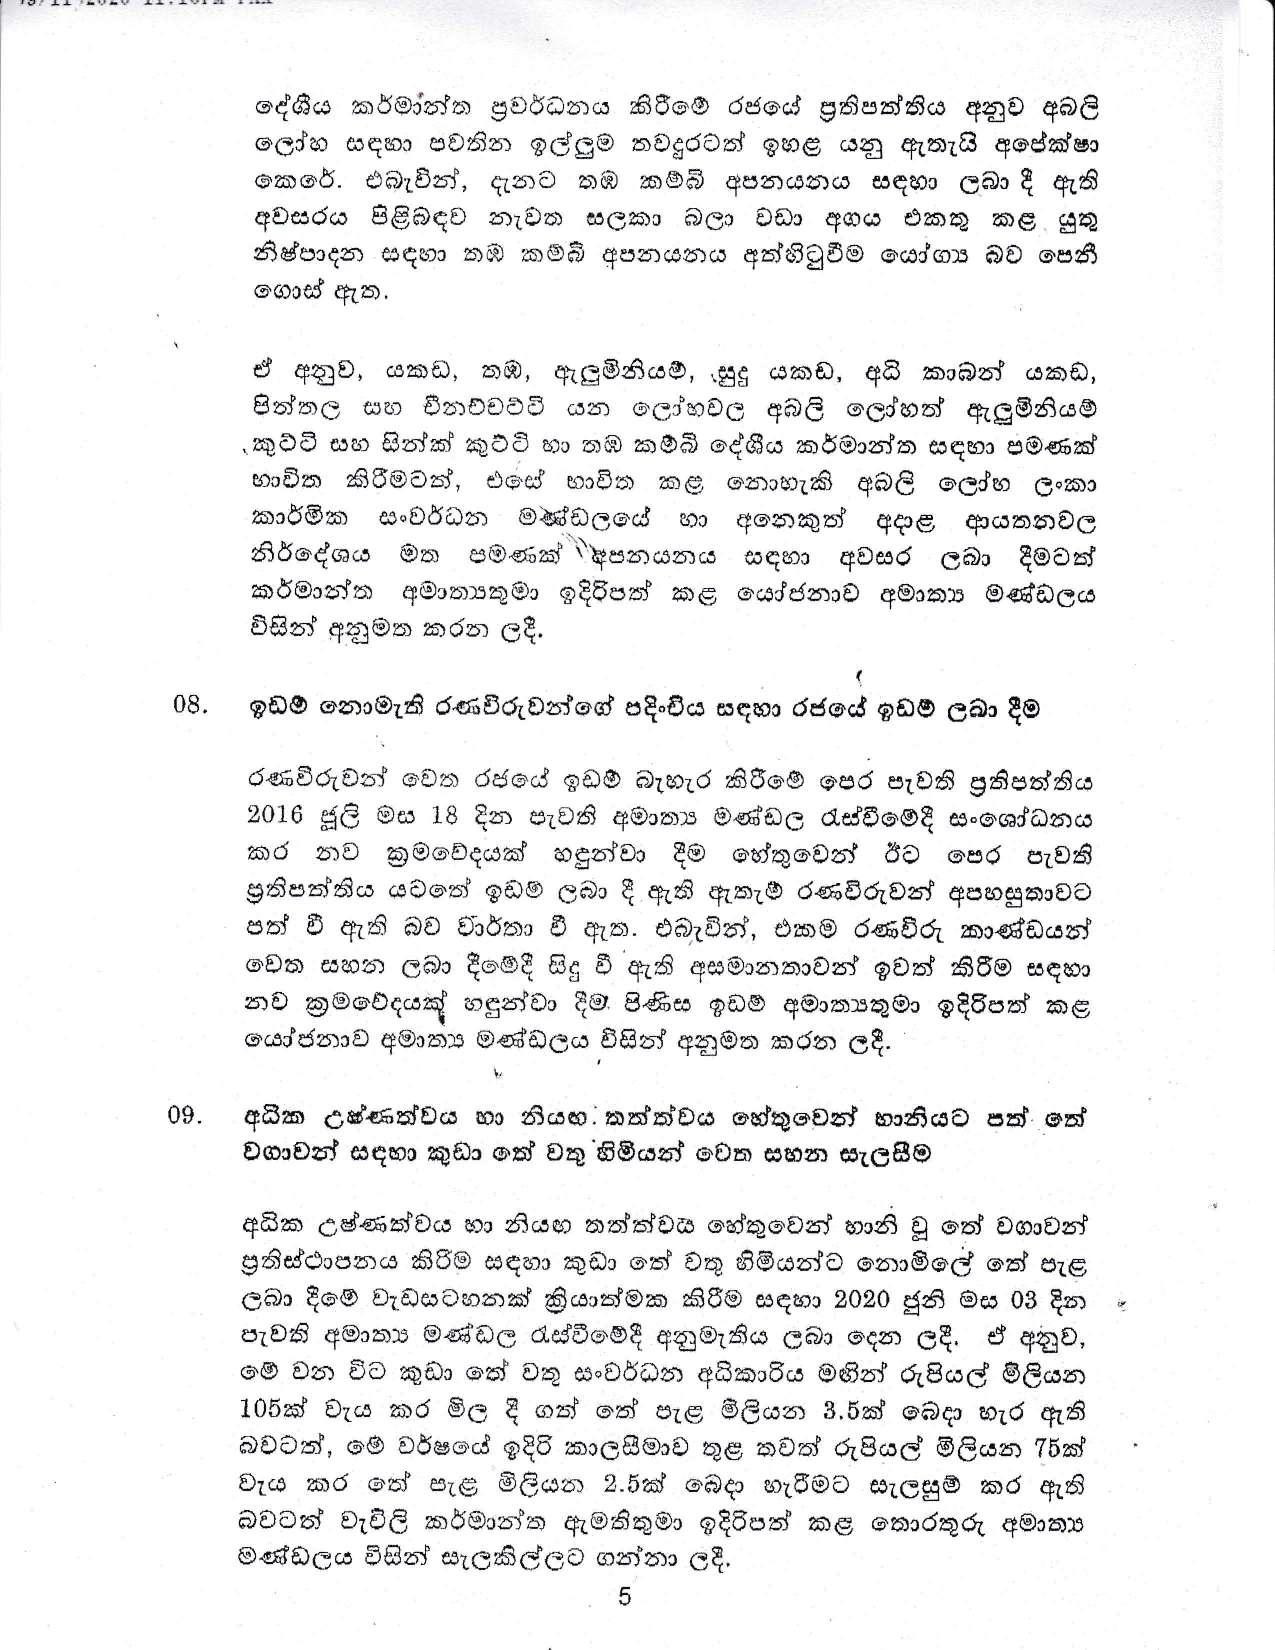 Cabinet Decision on 09.11.2020 Sinhala page 005